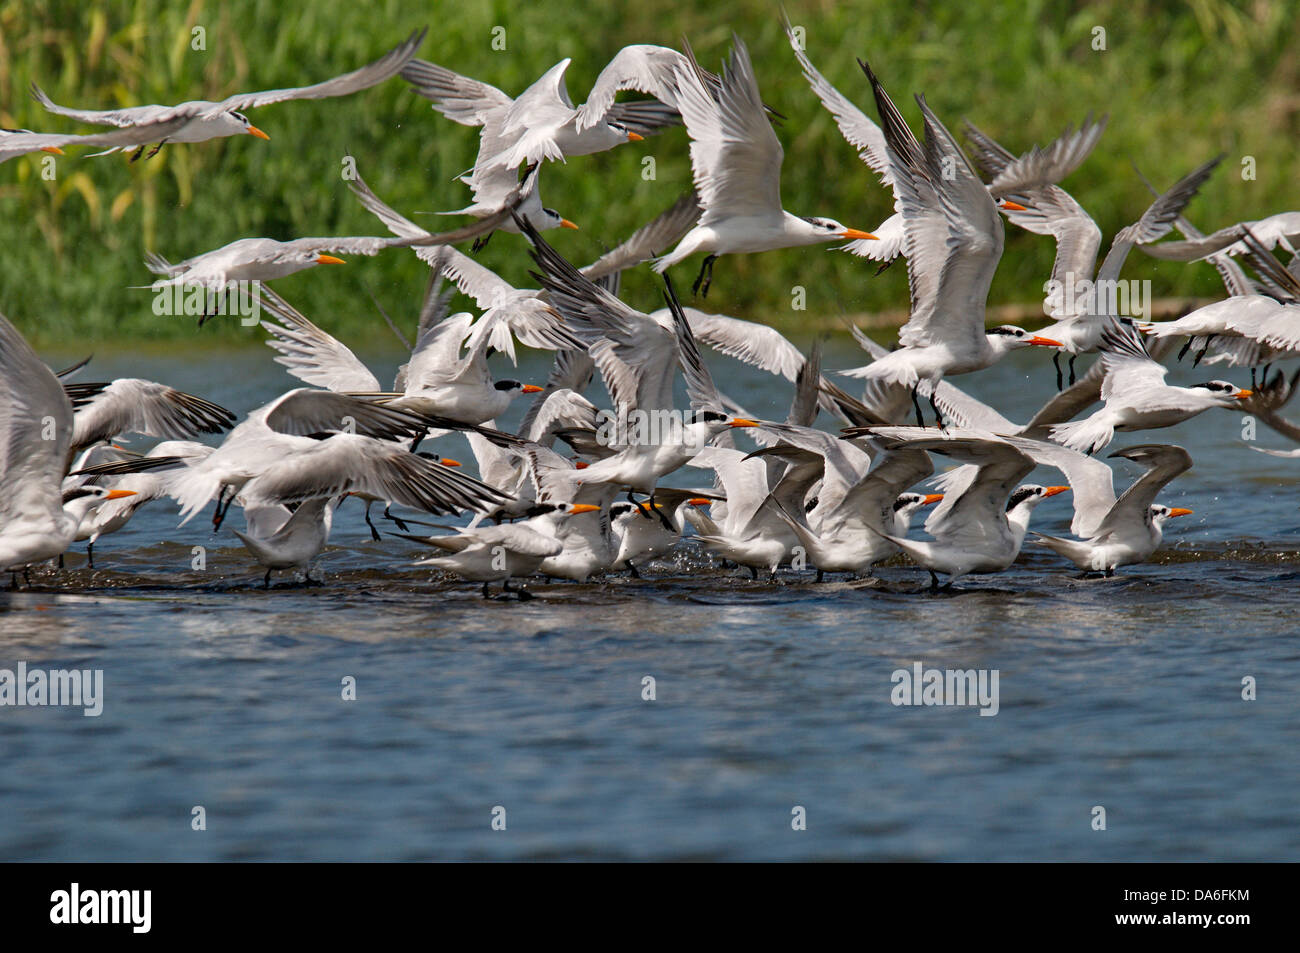 tern, terns, Sternidae, Laridae, bird, birds, animal, animals, fauna, wildlife, wild animal, nature, Costa Rica, - Stock Image